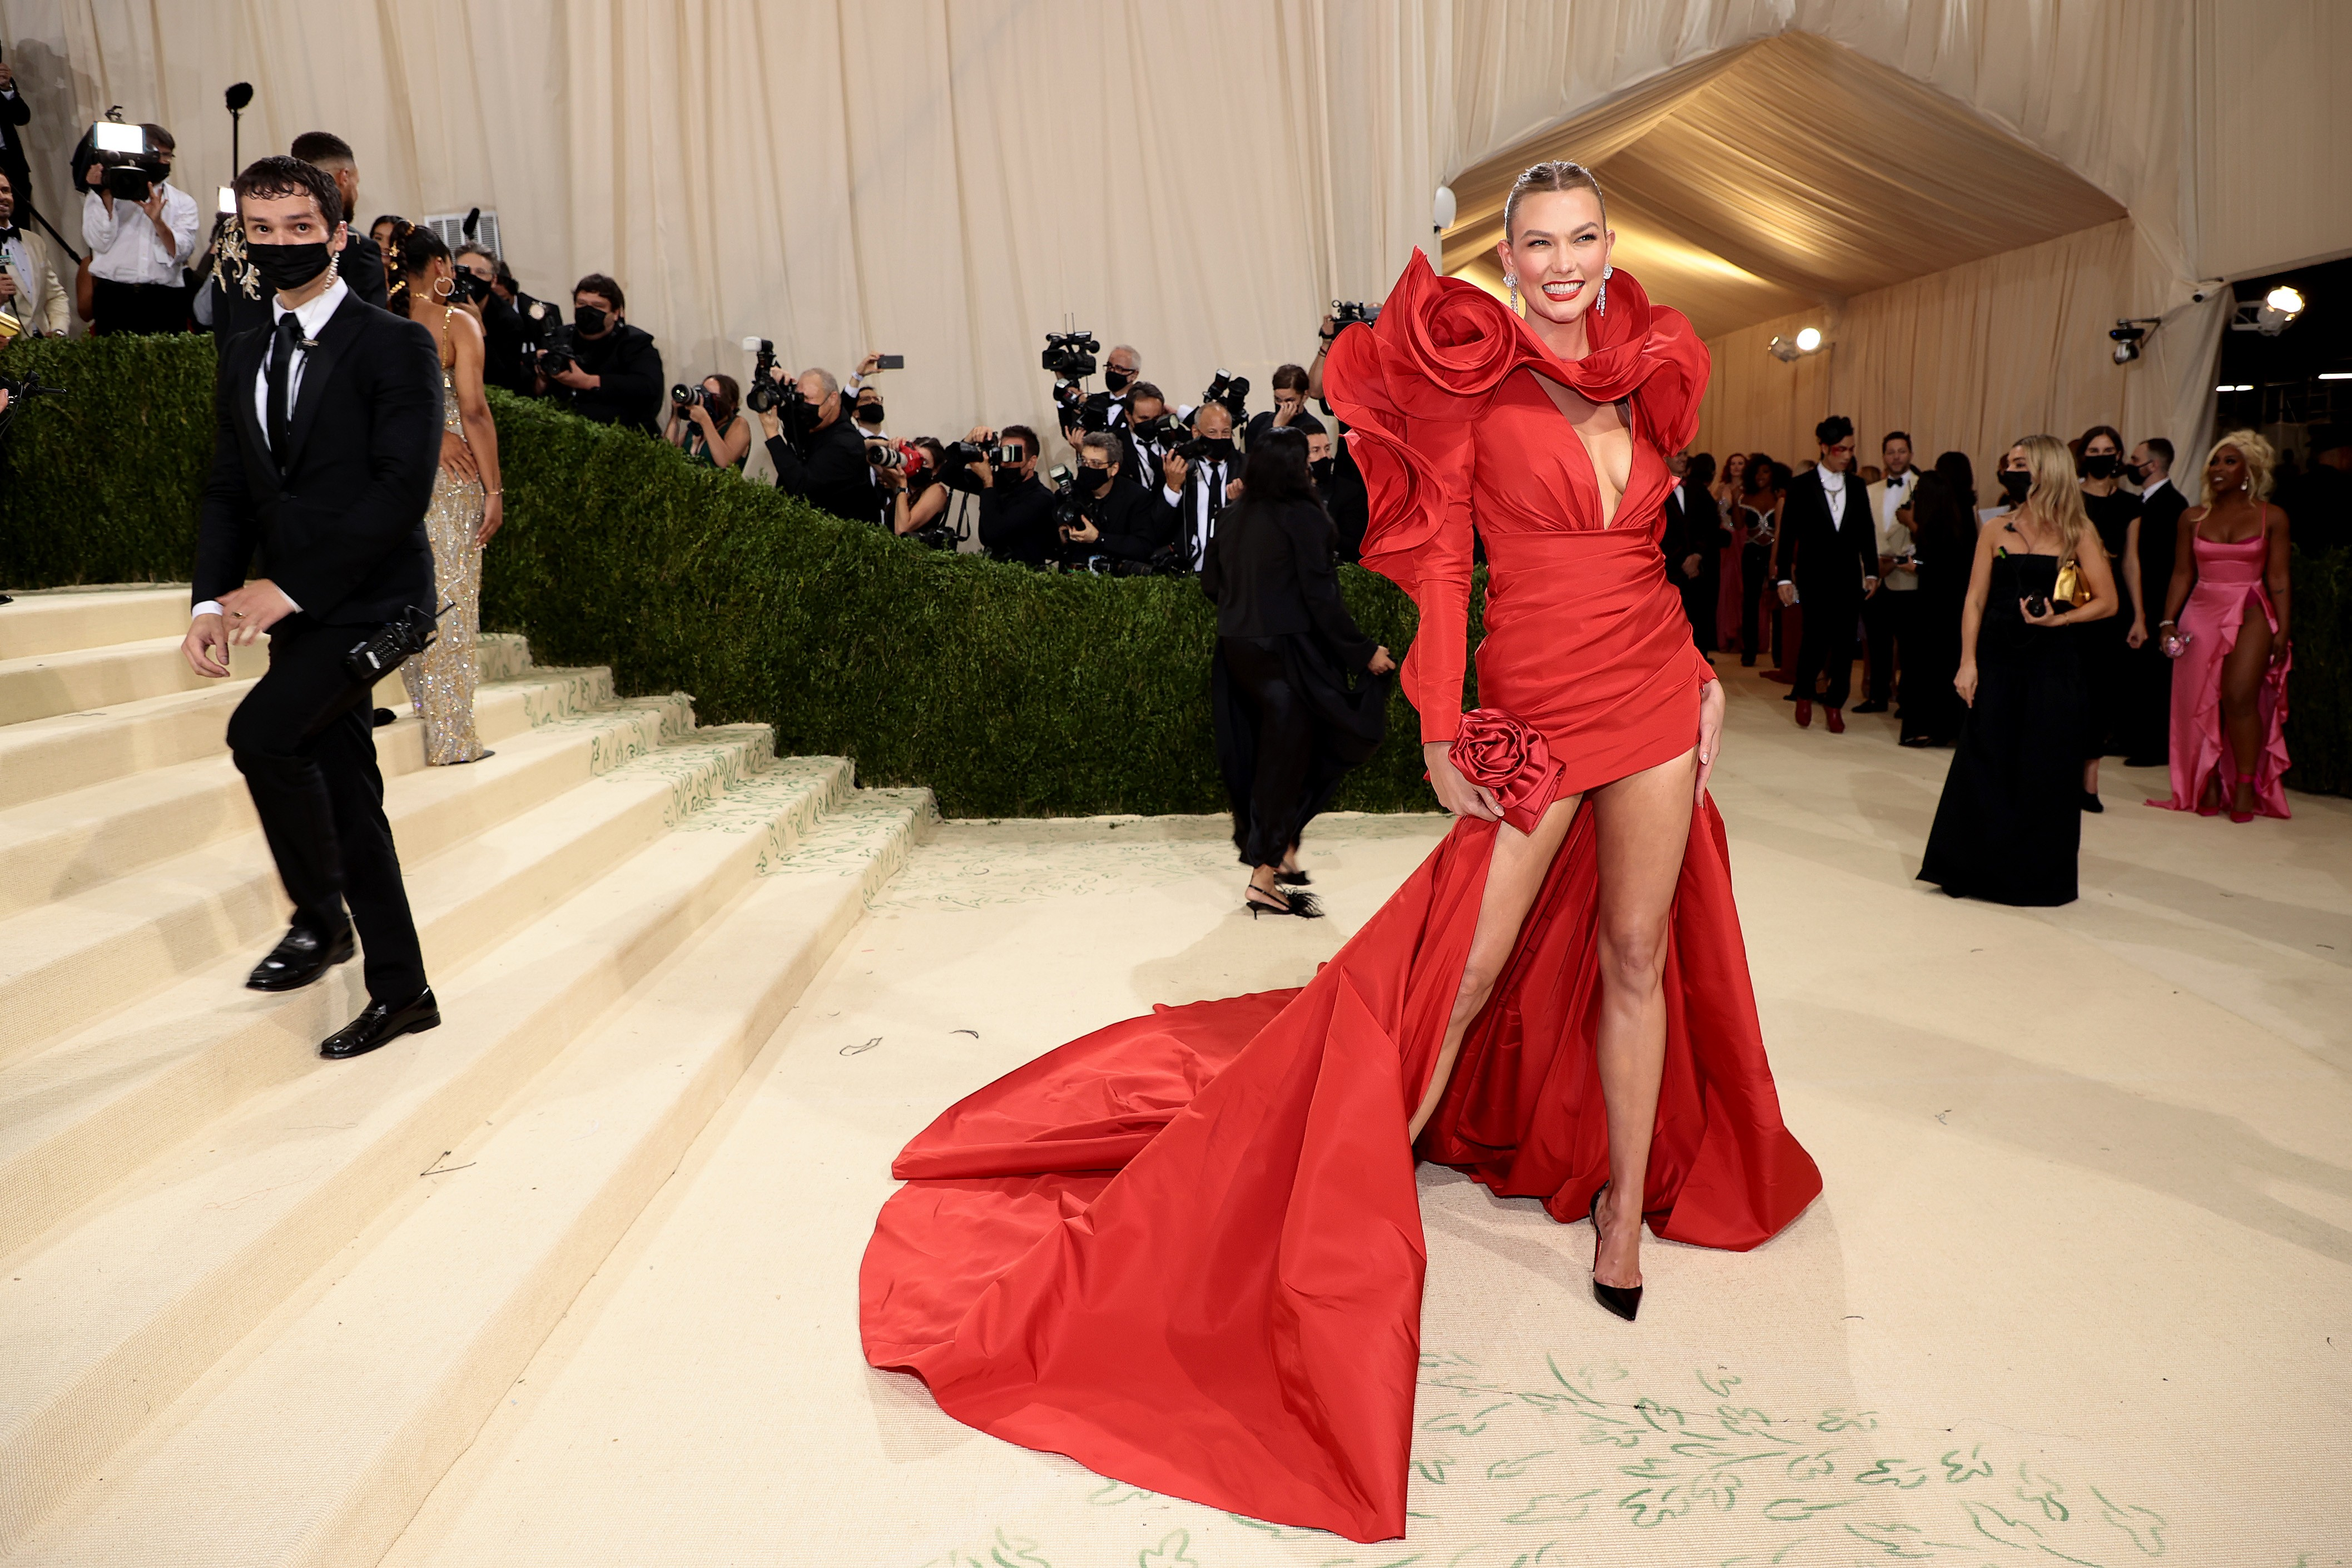 NEW YORK, NEW YORK - SEPTEMBER 13: Karlie Kloss attends The 2021 Met Gala Celebrating In America: A Lexicon Of Fashion at Metropolitan Museum of Art on September 13, 2021 in New York City. (Photo by Dimitrios Kambouris/Getty Images for The Met Museum/Vogu (Foto: Getty Images for The Met Museum/)